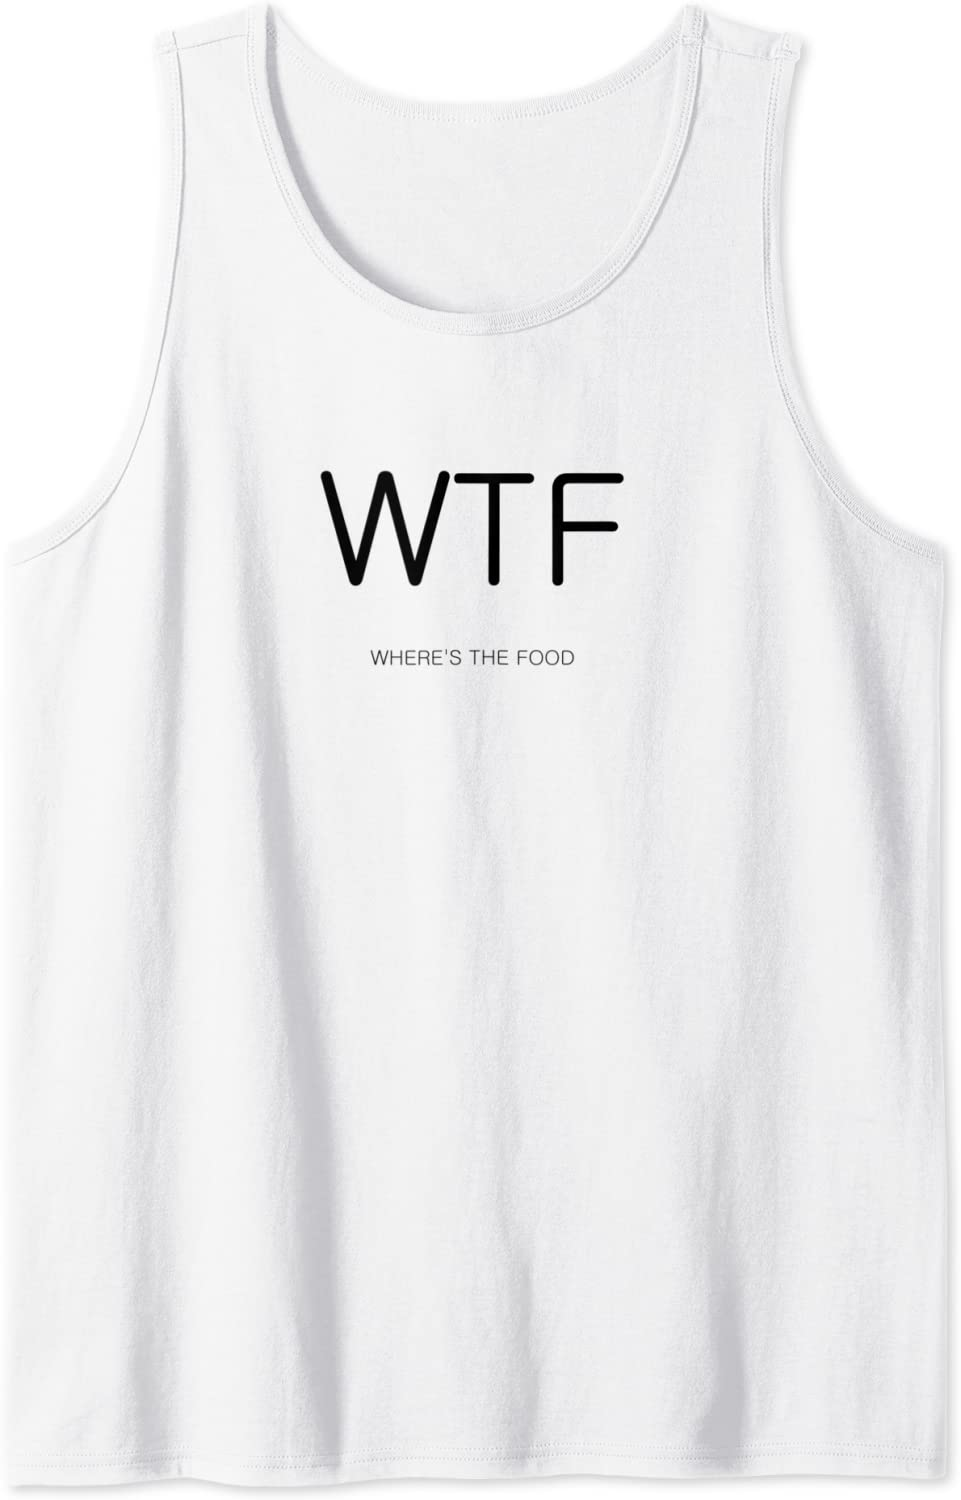 WTF - Where's the food Tank Top